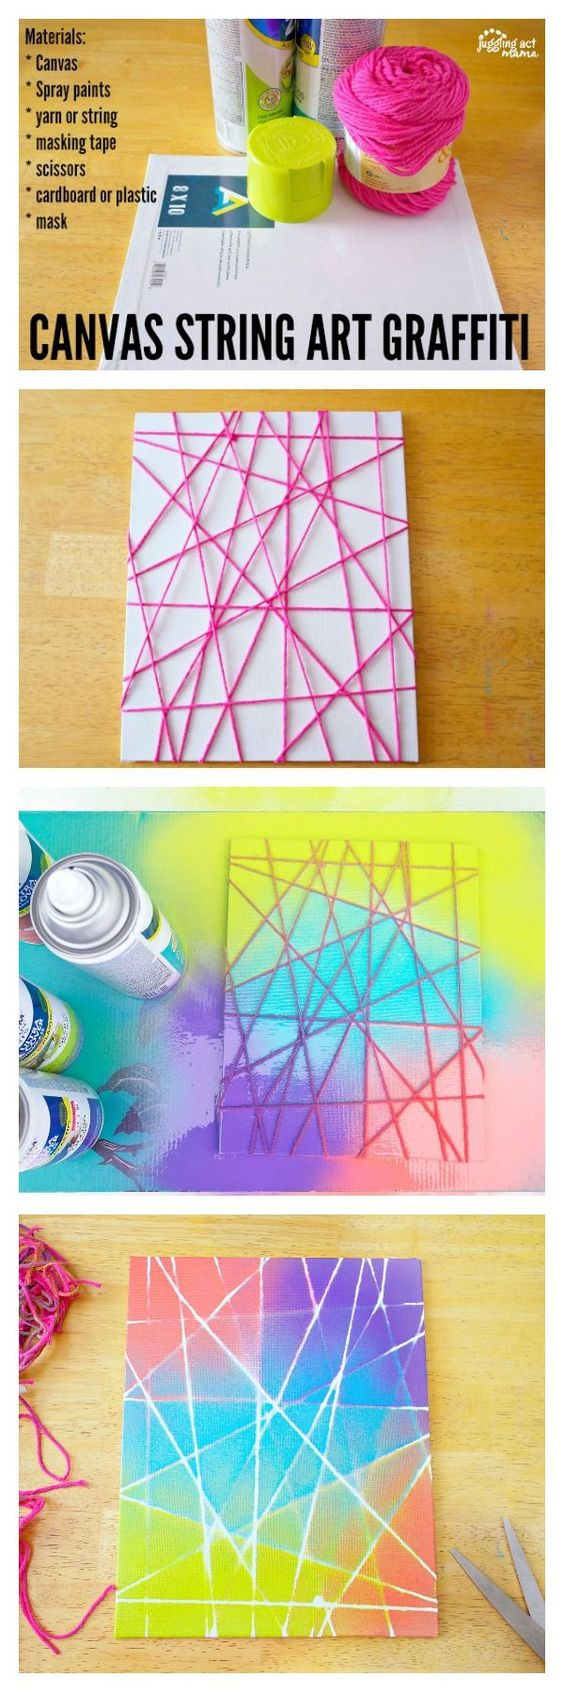 This Canvas String Art Graffiti project is fun for kids and adults alike.  While this is a spray paint project, you can use alternative paints or dyes for younger children.: